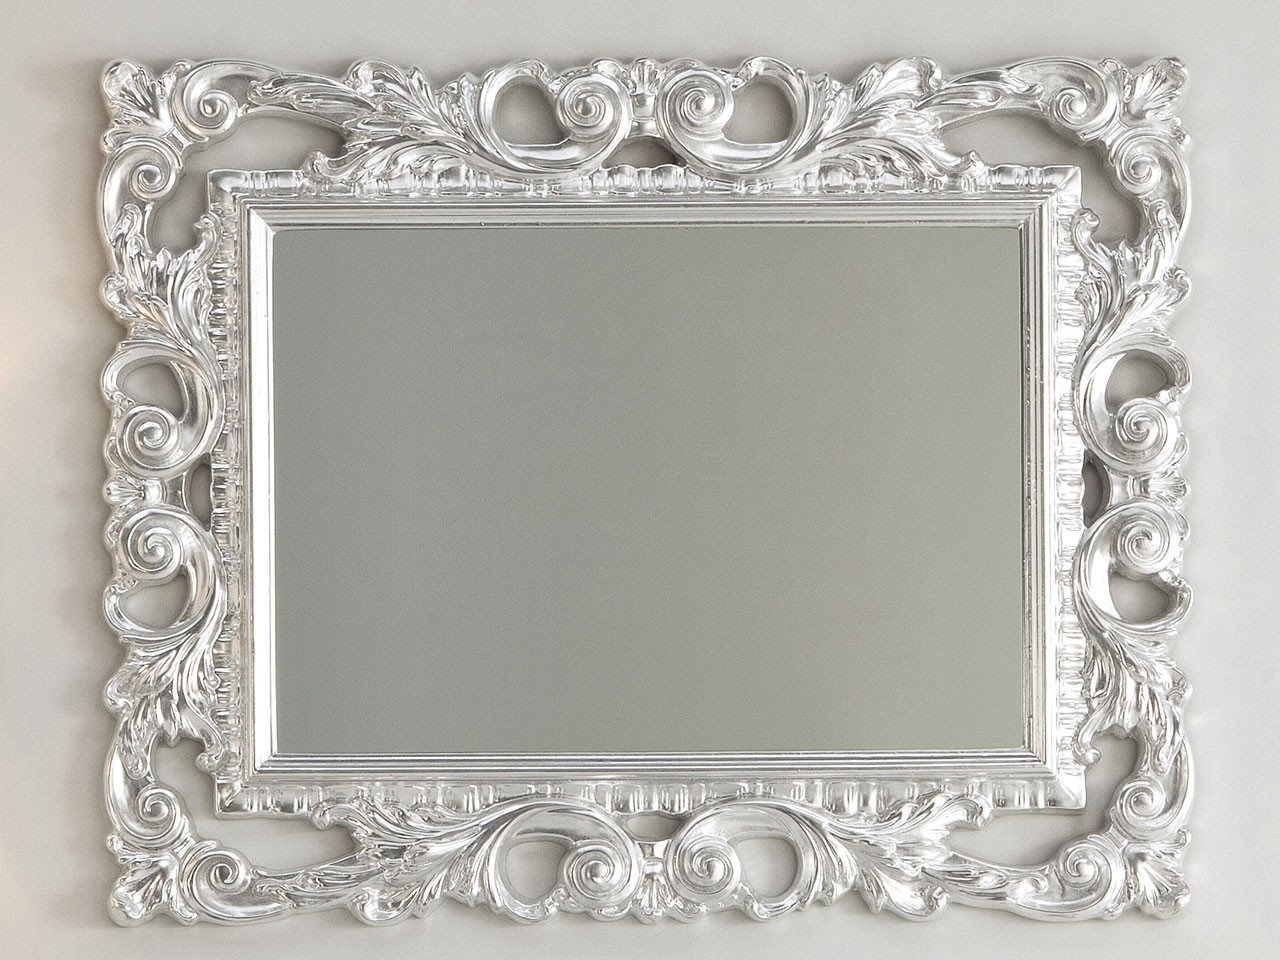 Baroque Mirror 94×75 Silver Leaf Iperceramica Within Silver Baroque Mirror (Image 2 of 15)